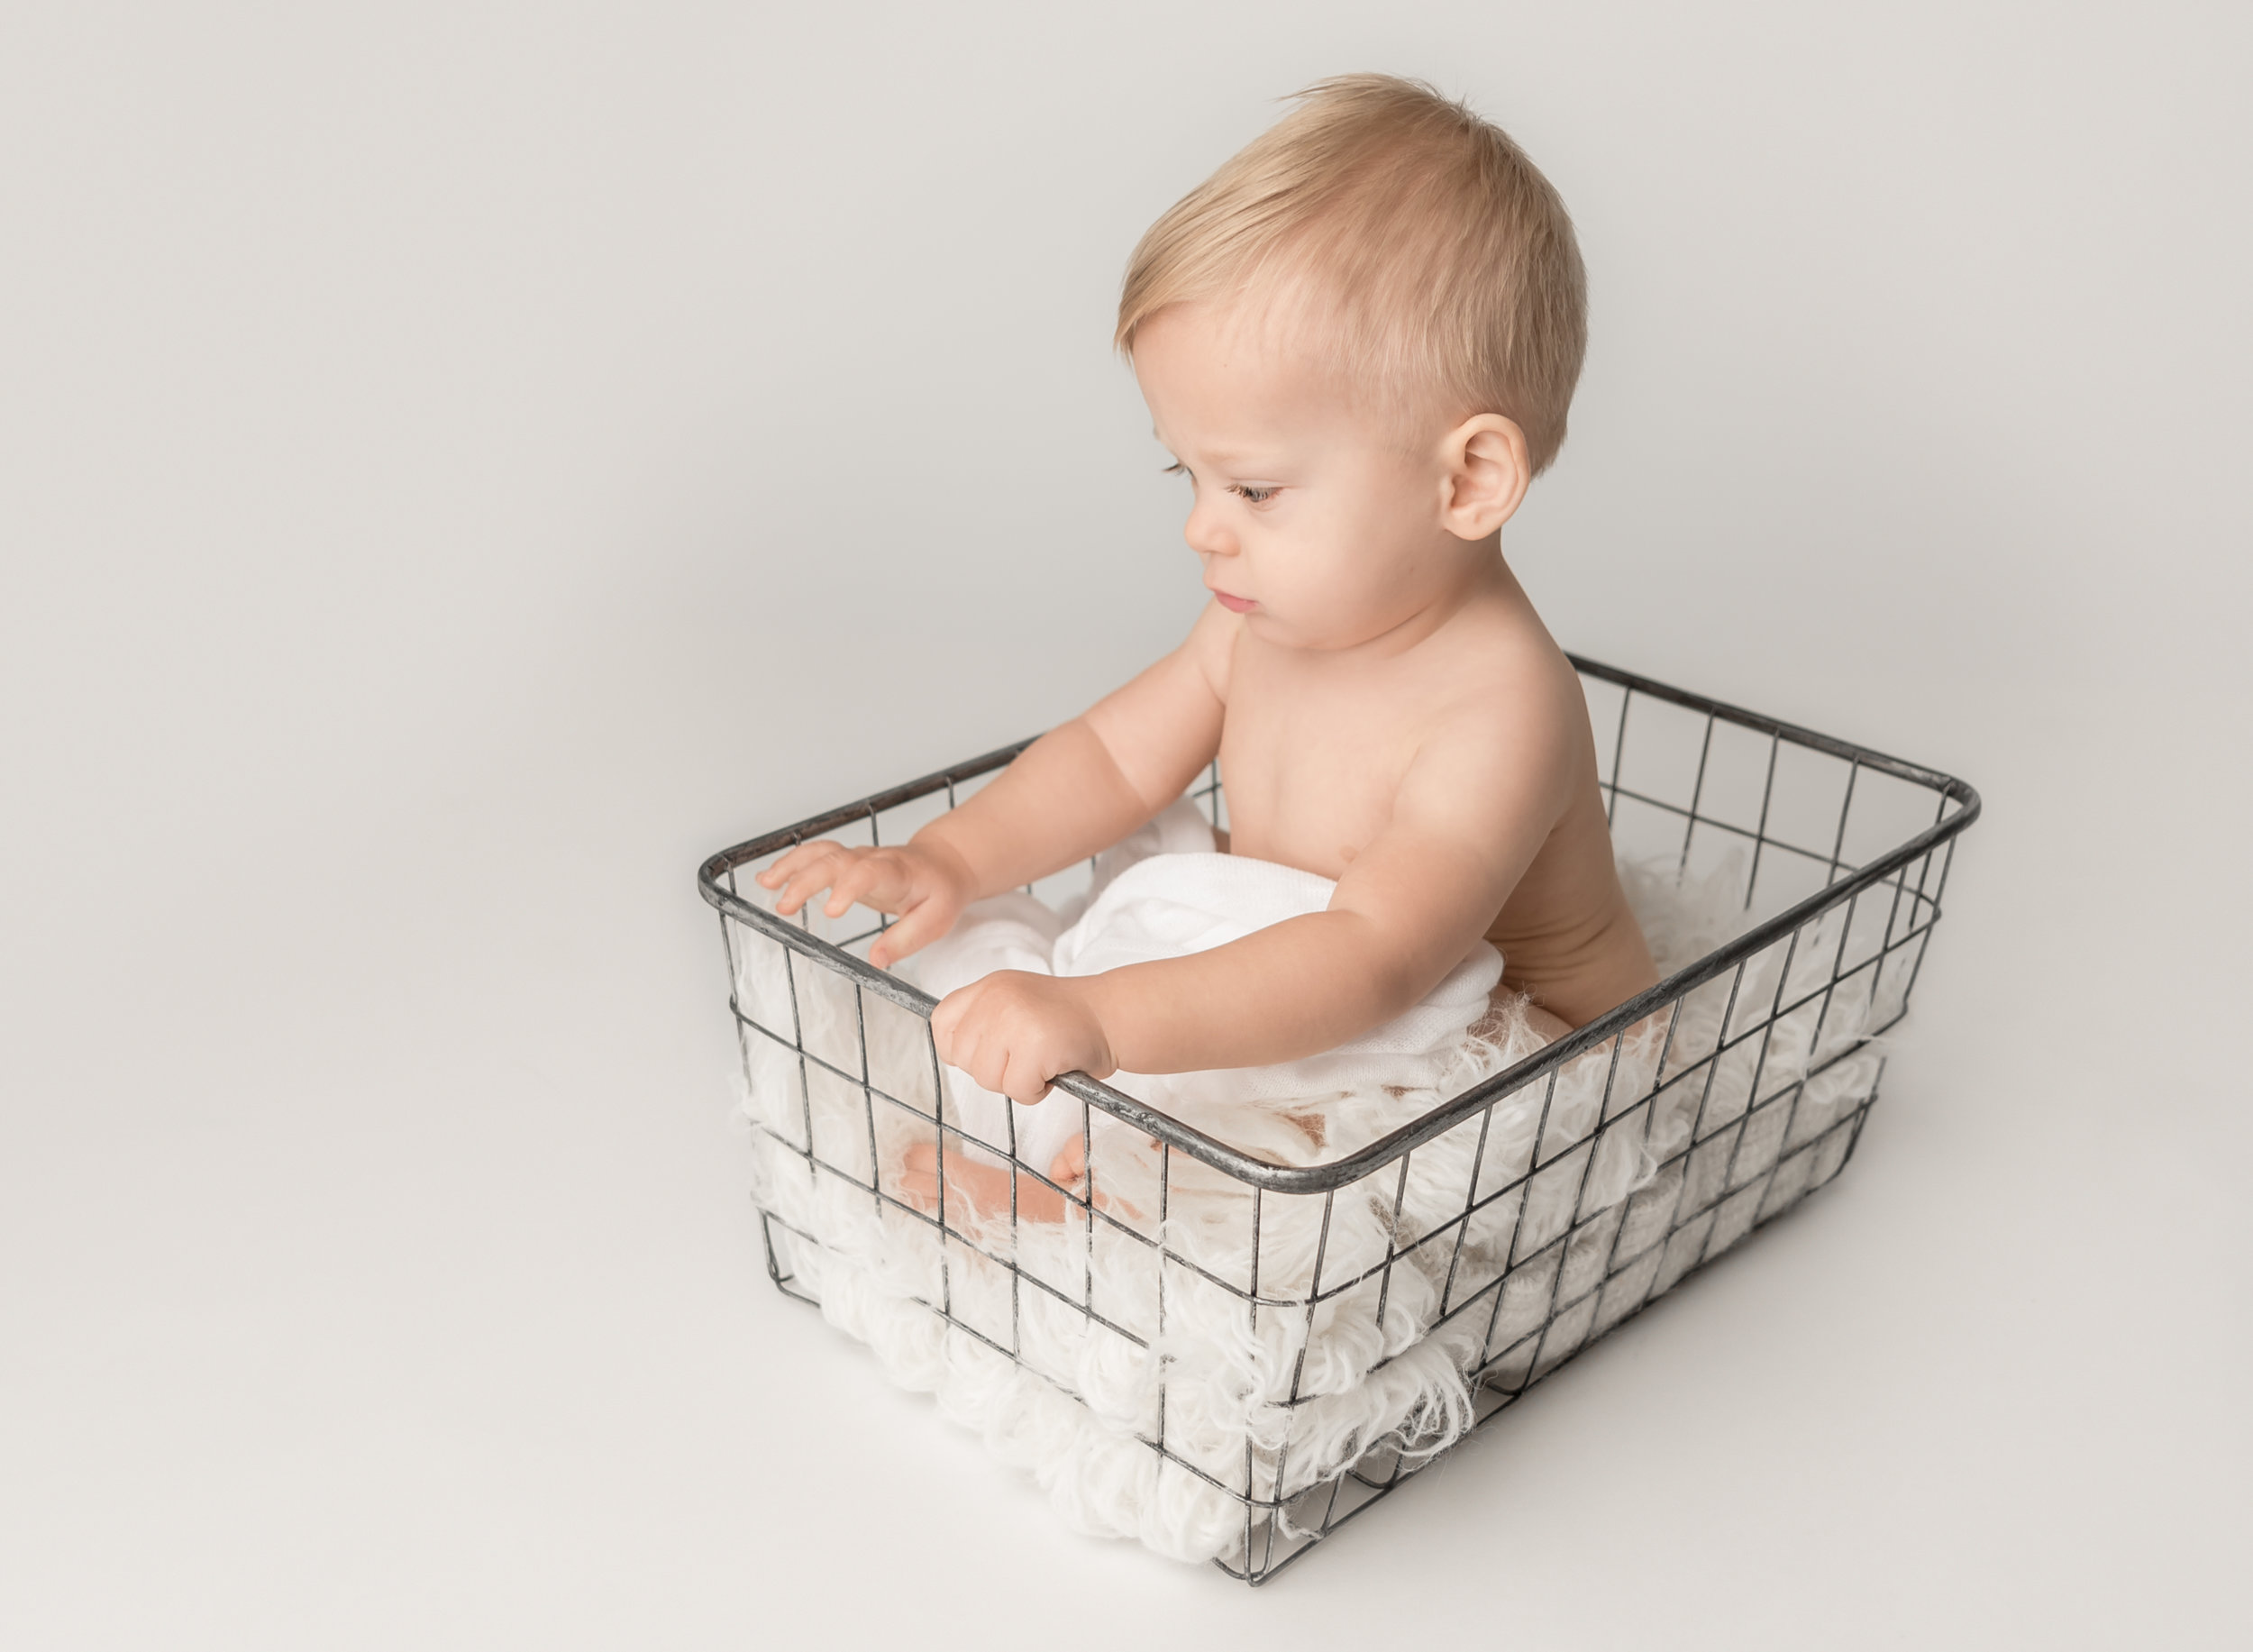 One Year Old in a Basket